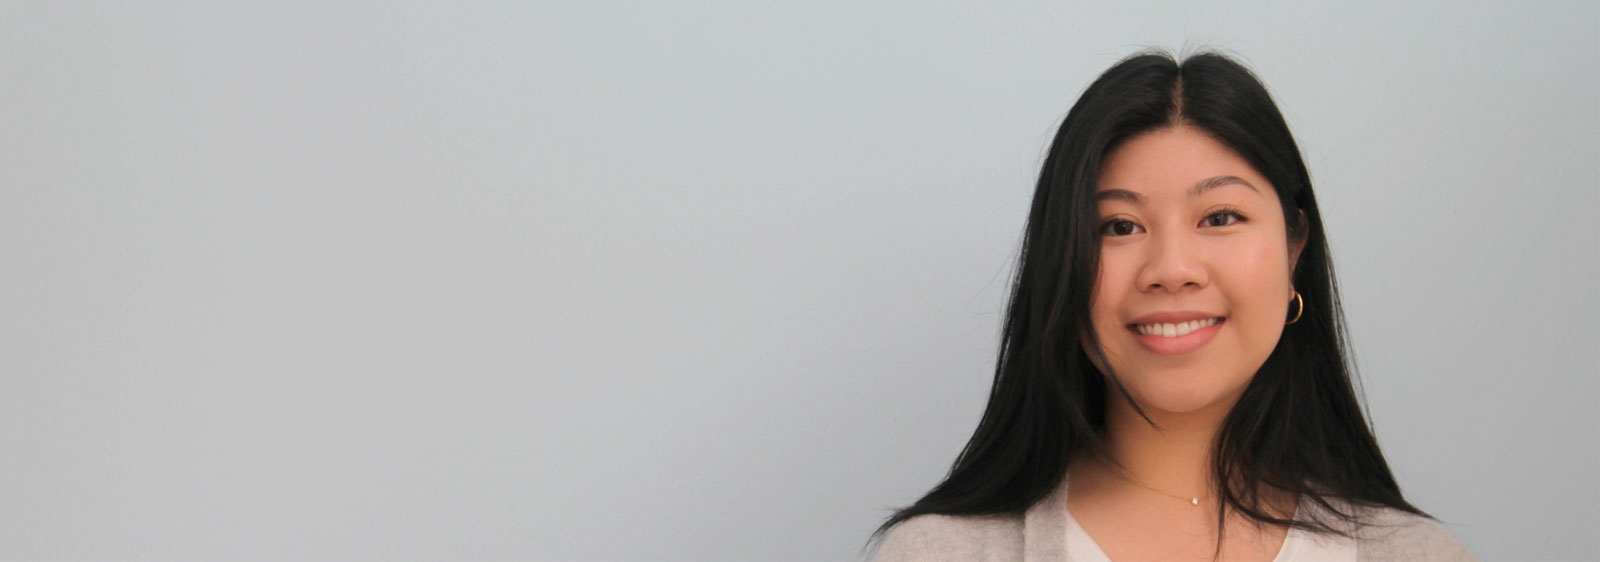 5 Questions with Brianna Nguyen